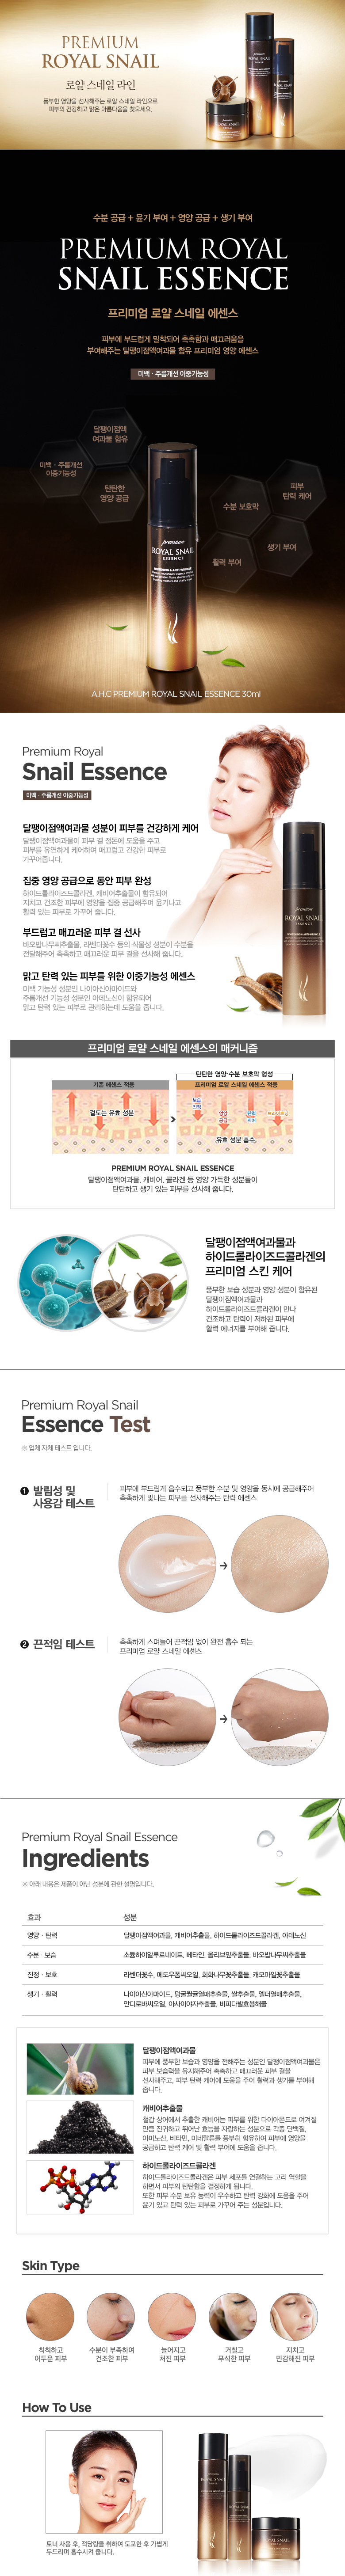 AHC Premium Royal Snail Essence 30ml malaysia singapore indonesia